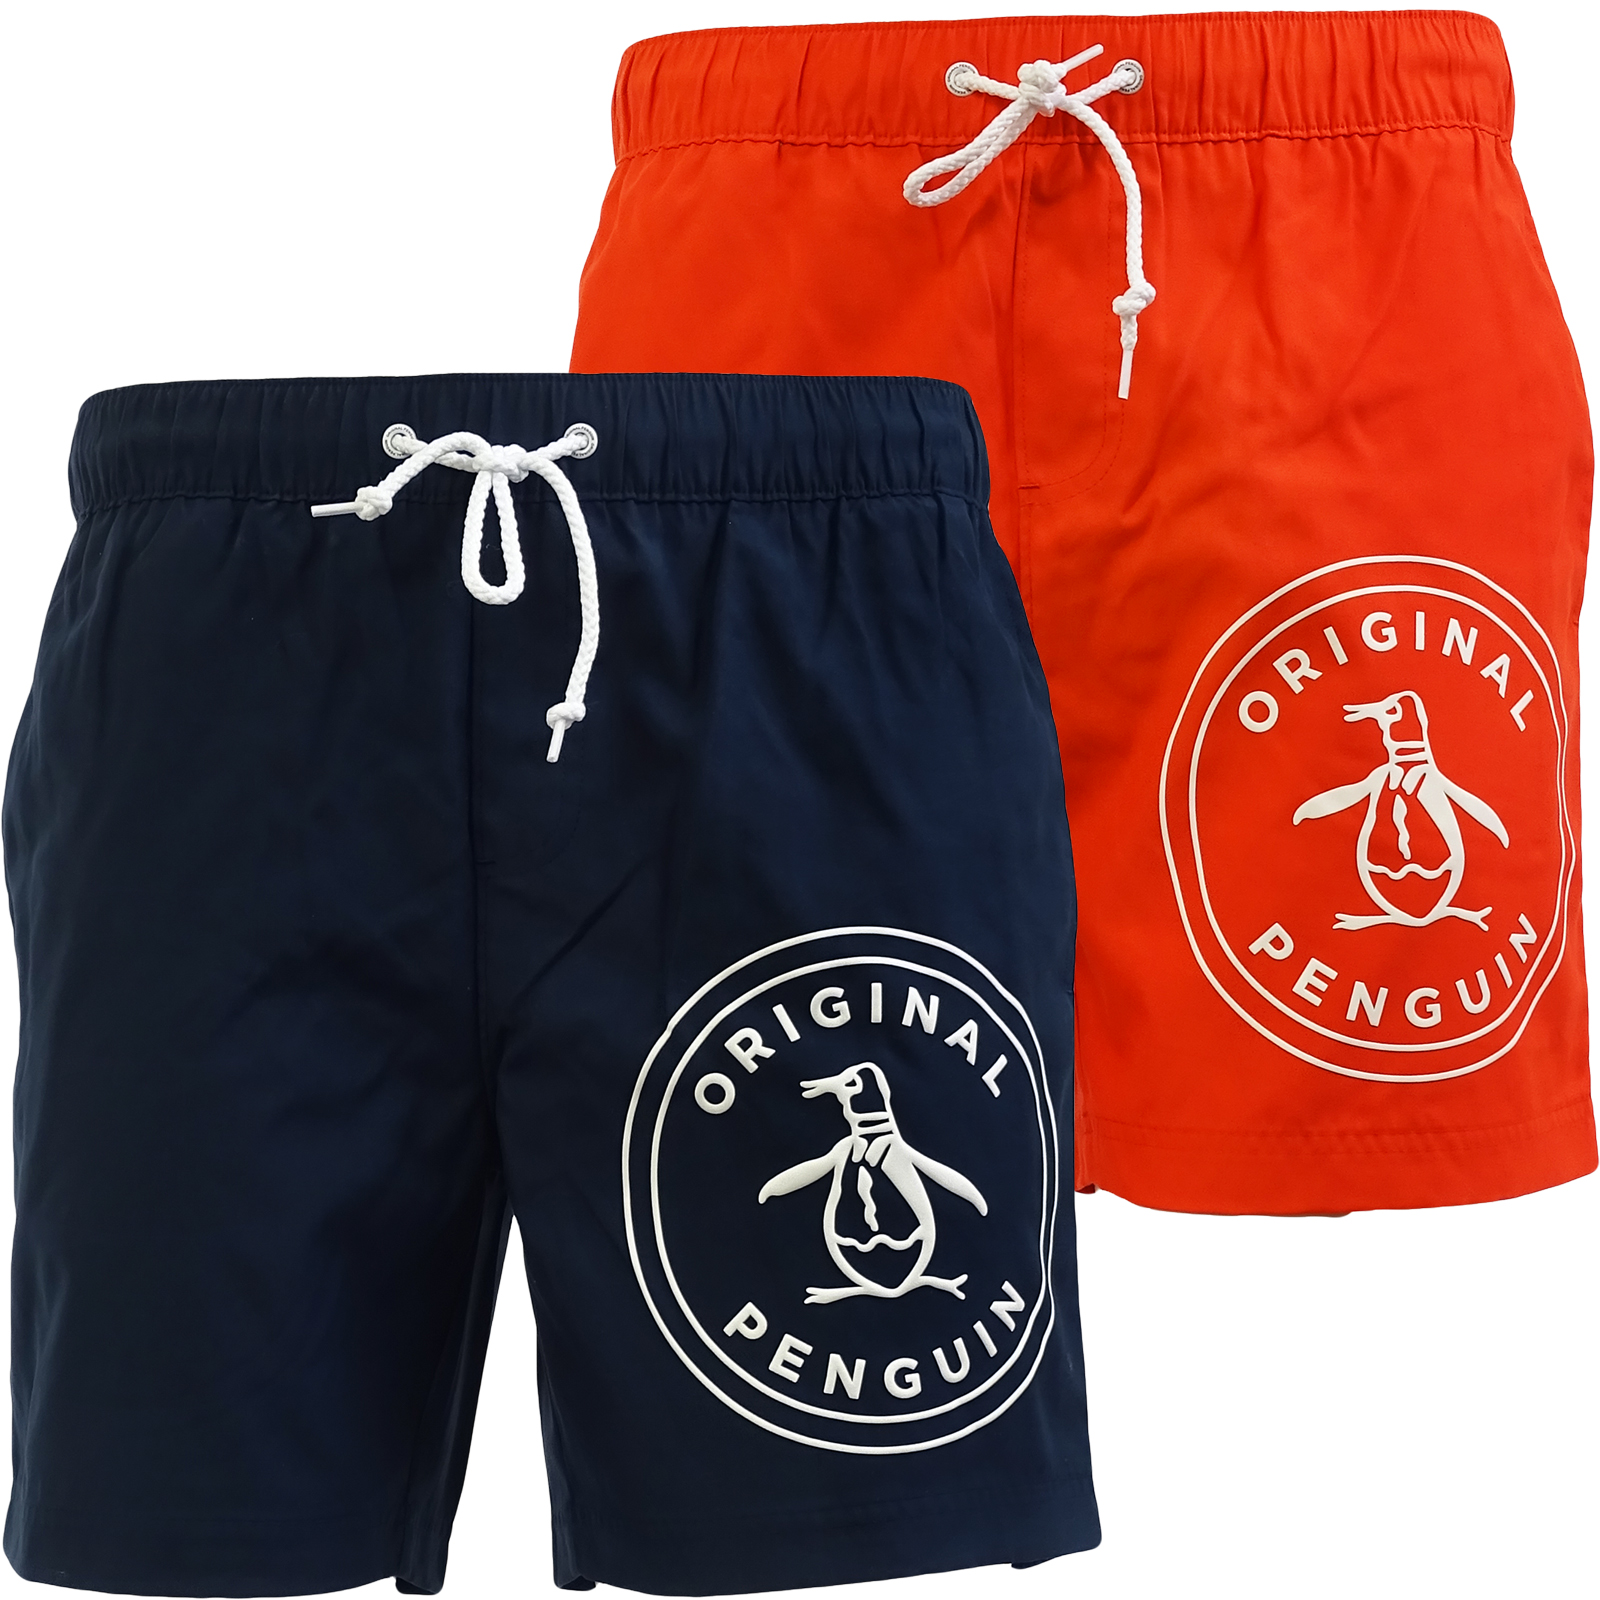 9df993498e Details about Original Penguin Swim Short Shorts - Opss9122